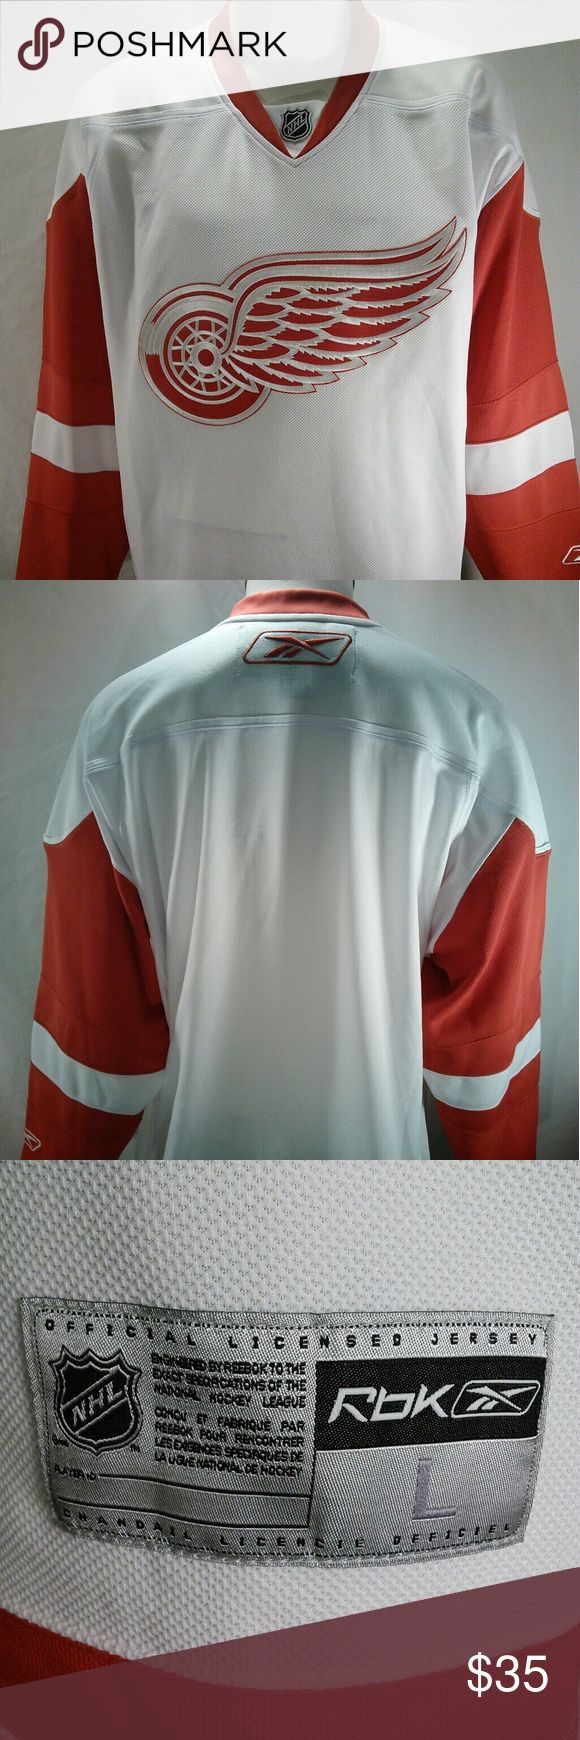 Reebok CCM NHL Red Wings Hockey Jersey Red White This is a nice pre owned Men's Large Red Wings Red and White Jersey. It is made by Reebok and of 100% Polyester. It has a nice Red Wings Logo on the front and Reebok logos on the sleeve and back of the neck. Great Jersey for any Red Wings fan! The measurements are Length 32 inches, Pit to Pit 28 inches, and Sleeves are 22 inches. Any questions please feel free to ask. Reebok Shirts Sweatshirts & Hoodies